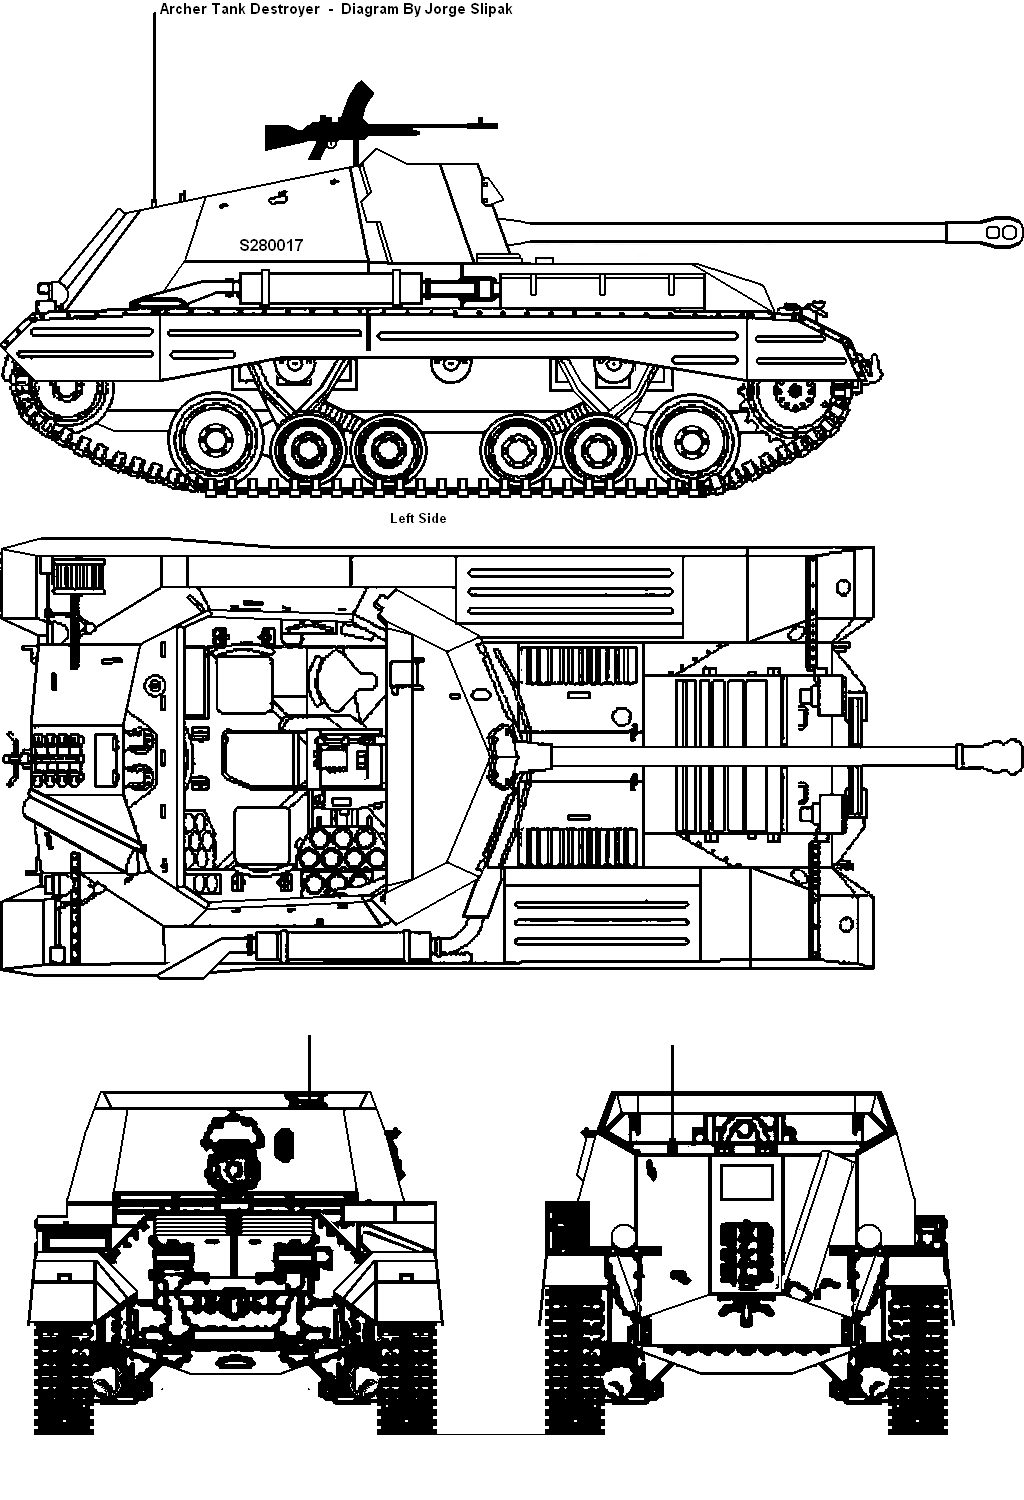 The Archer Tank Destroyer Blueprints